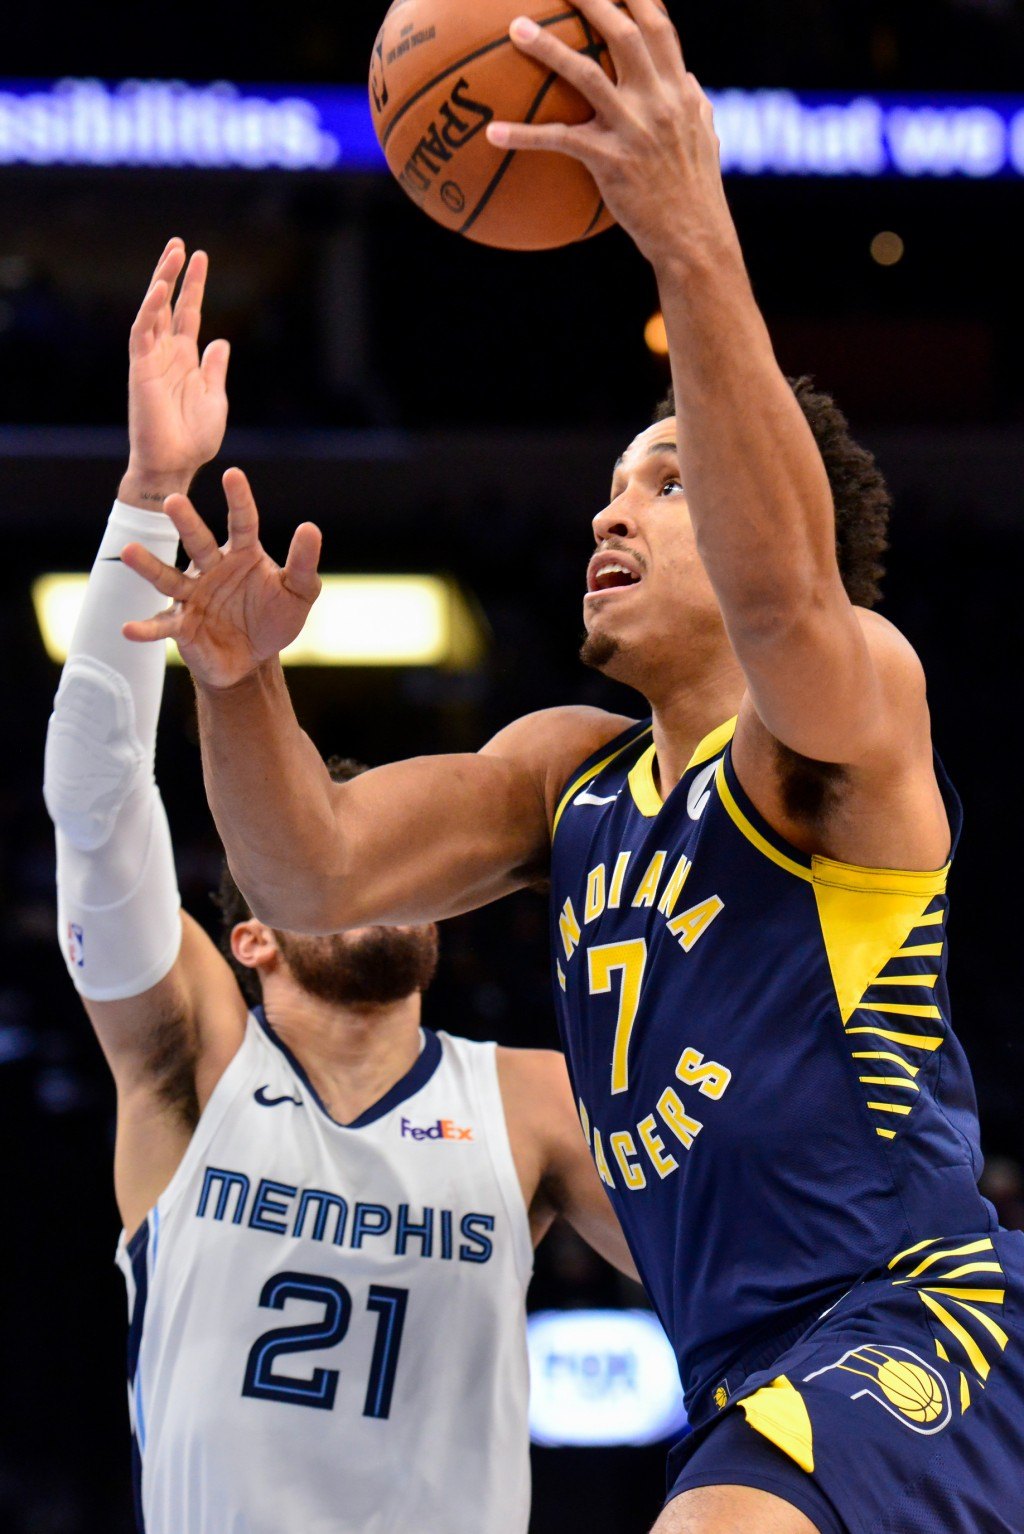 Indiana Pacers guard Malcolm Brogdon (7) shoots against Memphis Grizzlies guard Tyus Jones (21) in the first half of an NBA basketball game Monday, De...